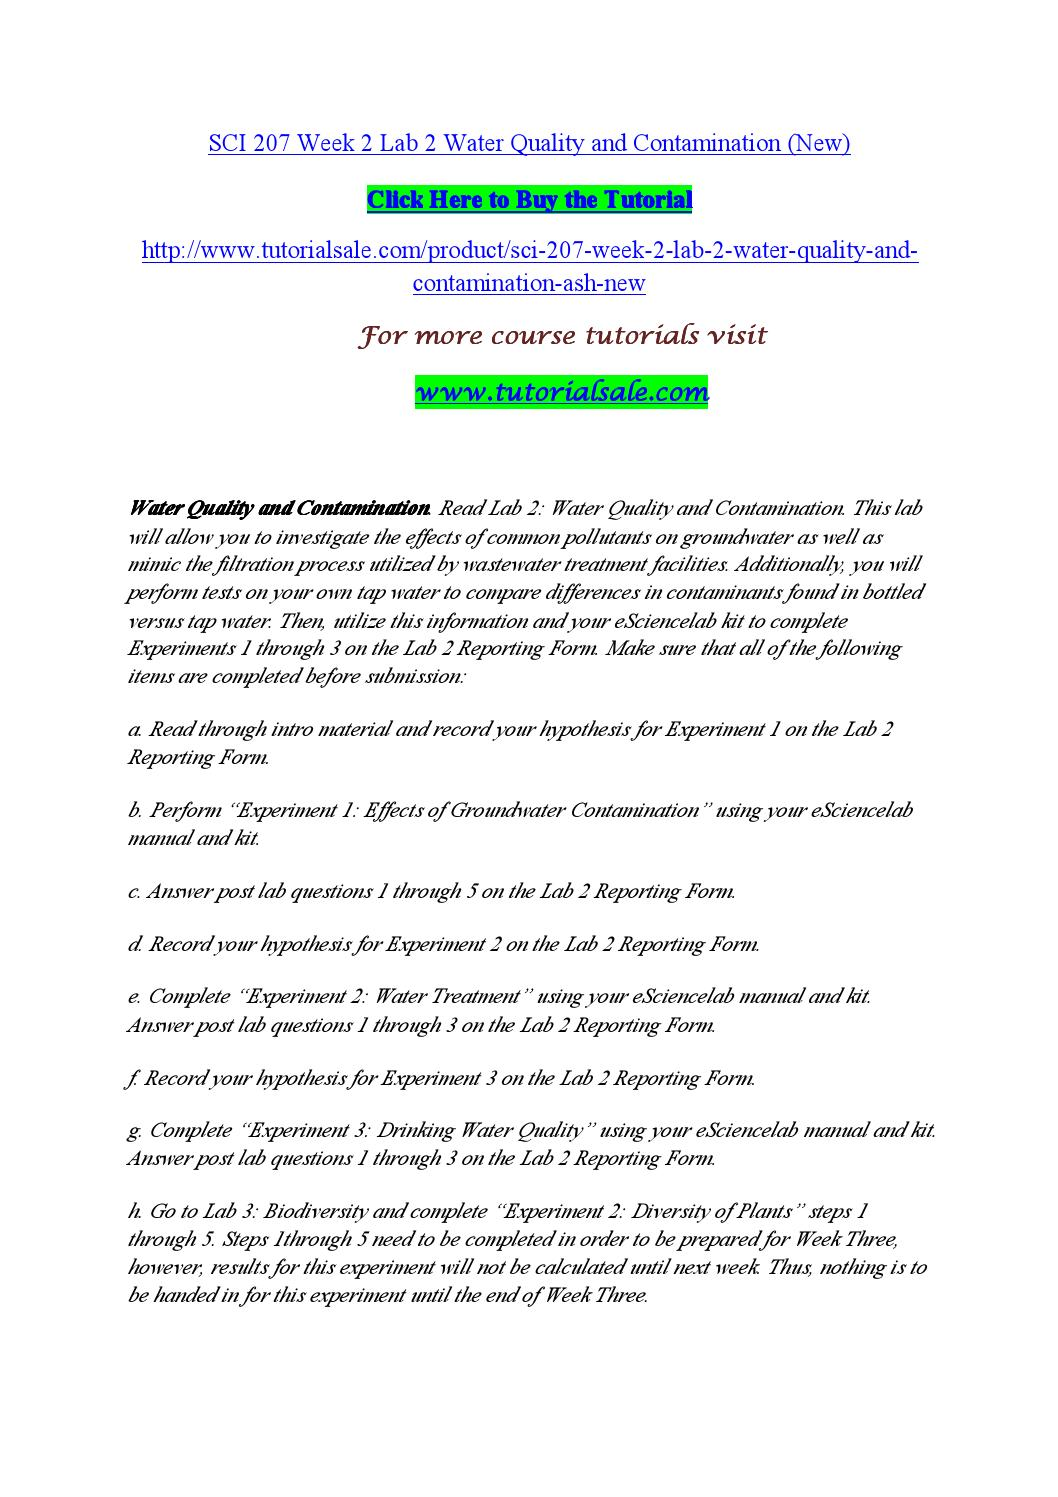 lab 2 water quality and contamination View lab report - sci 207 week 2 lab 2 water quality and contamination from sci 207 at ashford university running head: lab 2 1 lab 2: water quality and contamination name sci.